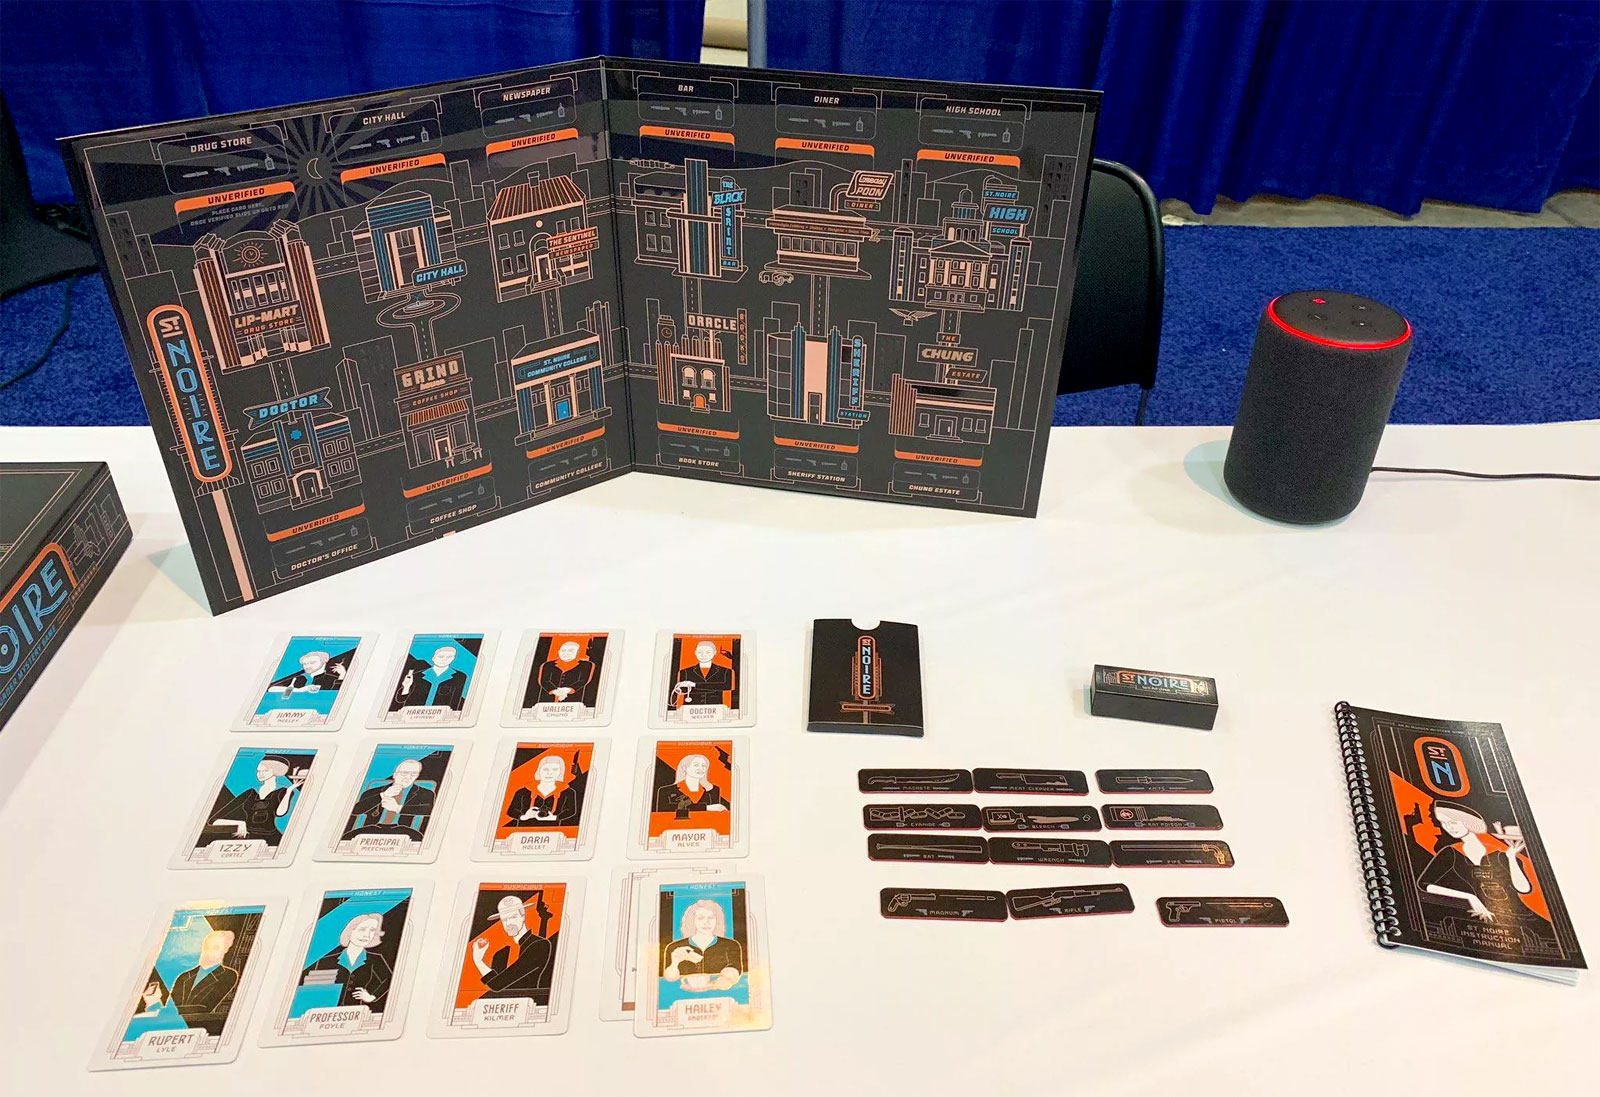 St. Noire is Bushnell's first Alexa board game